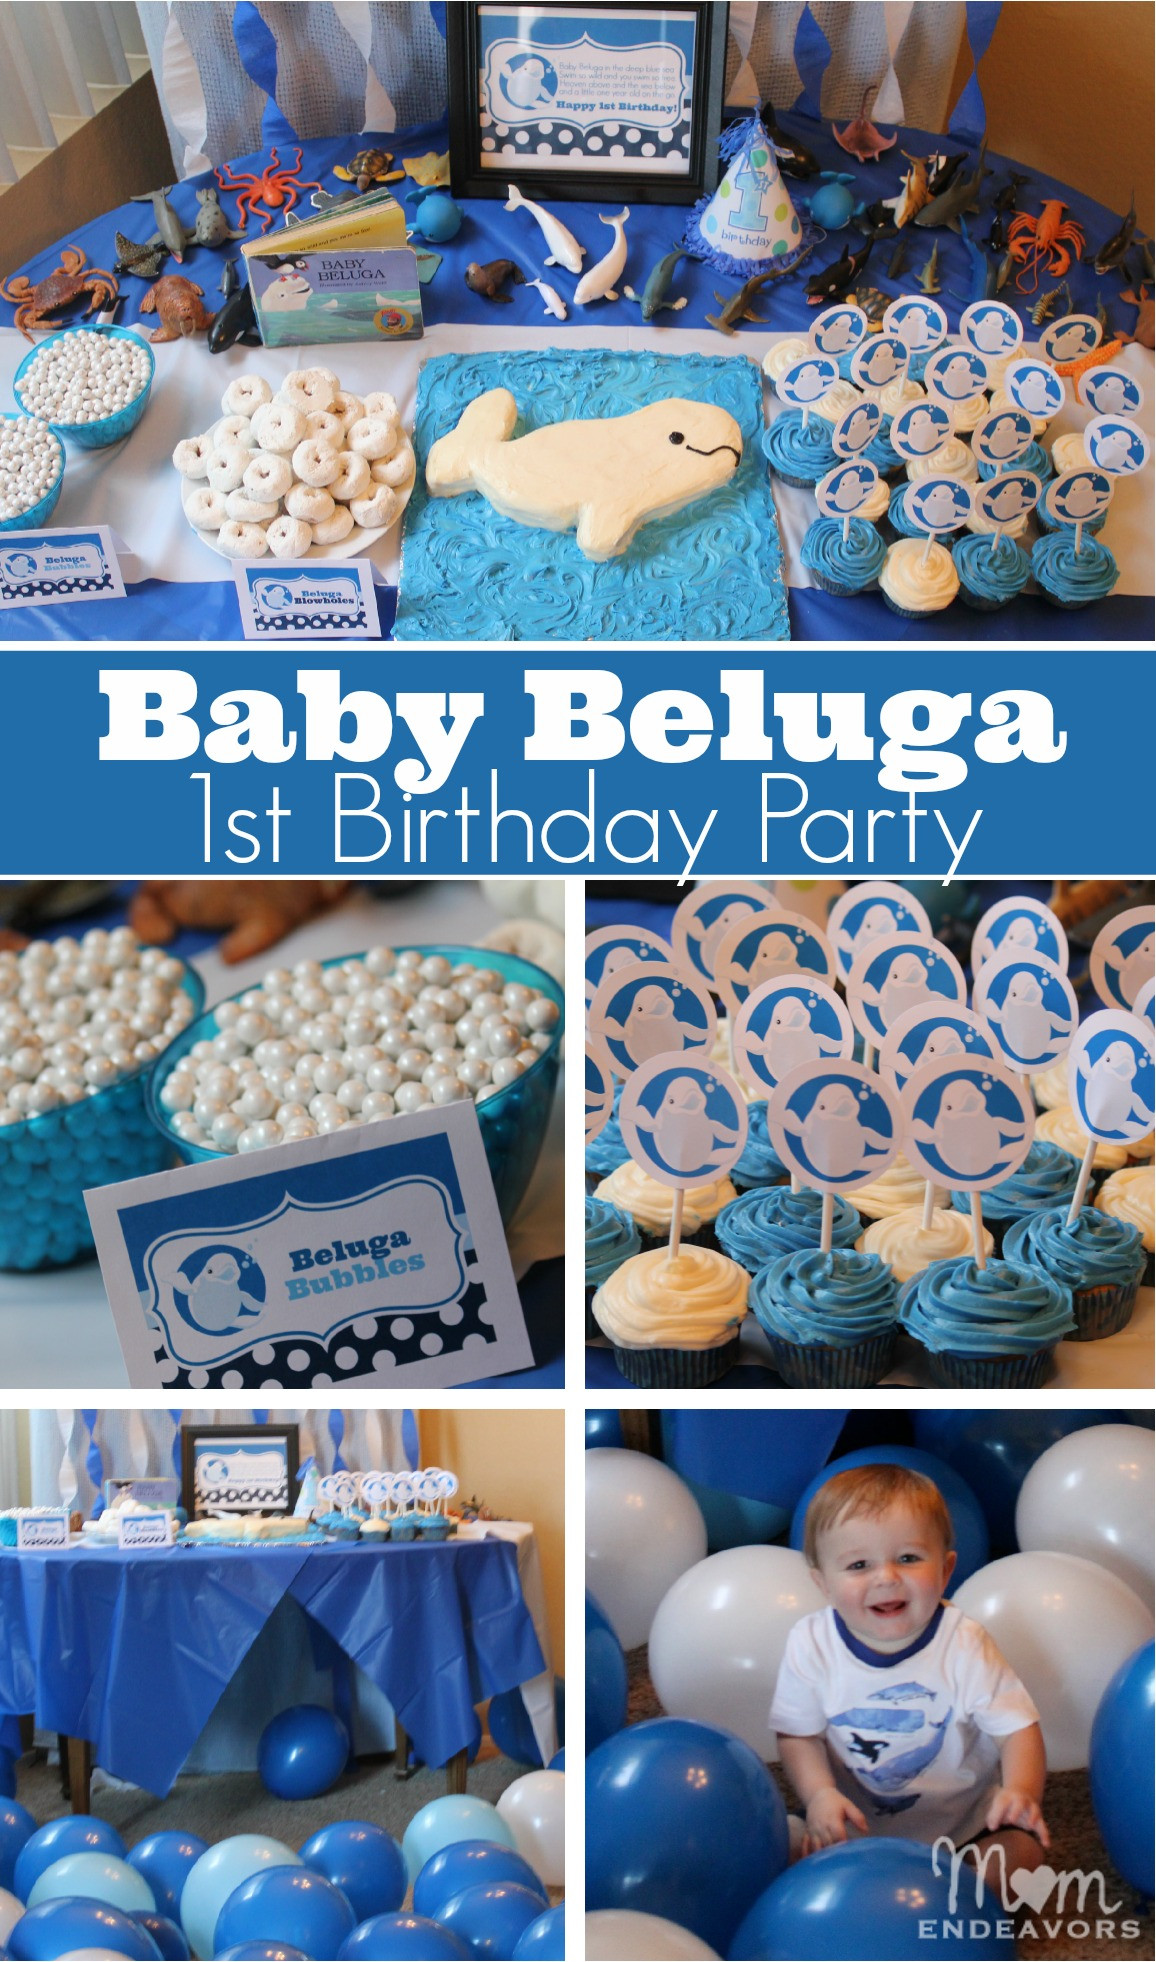 Best ideas about Baby First Birthday Party . Save or Pin Baby Beluga 1st Birthday Party Now.